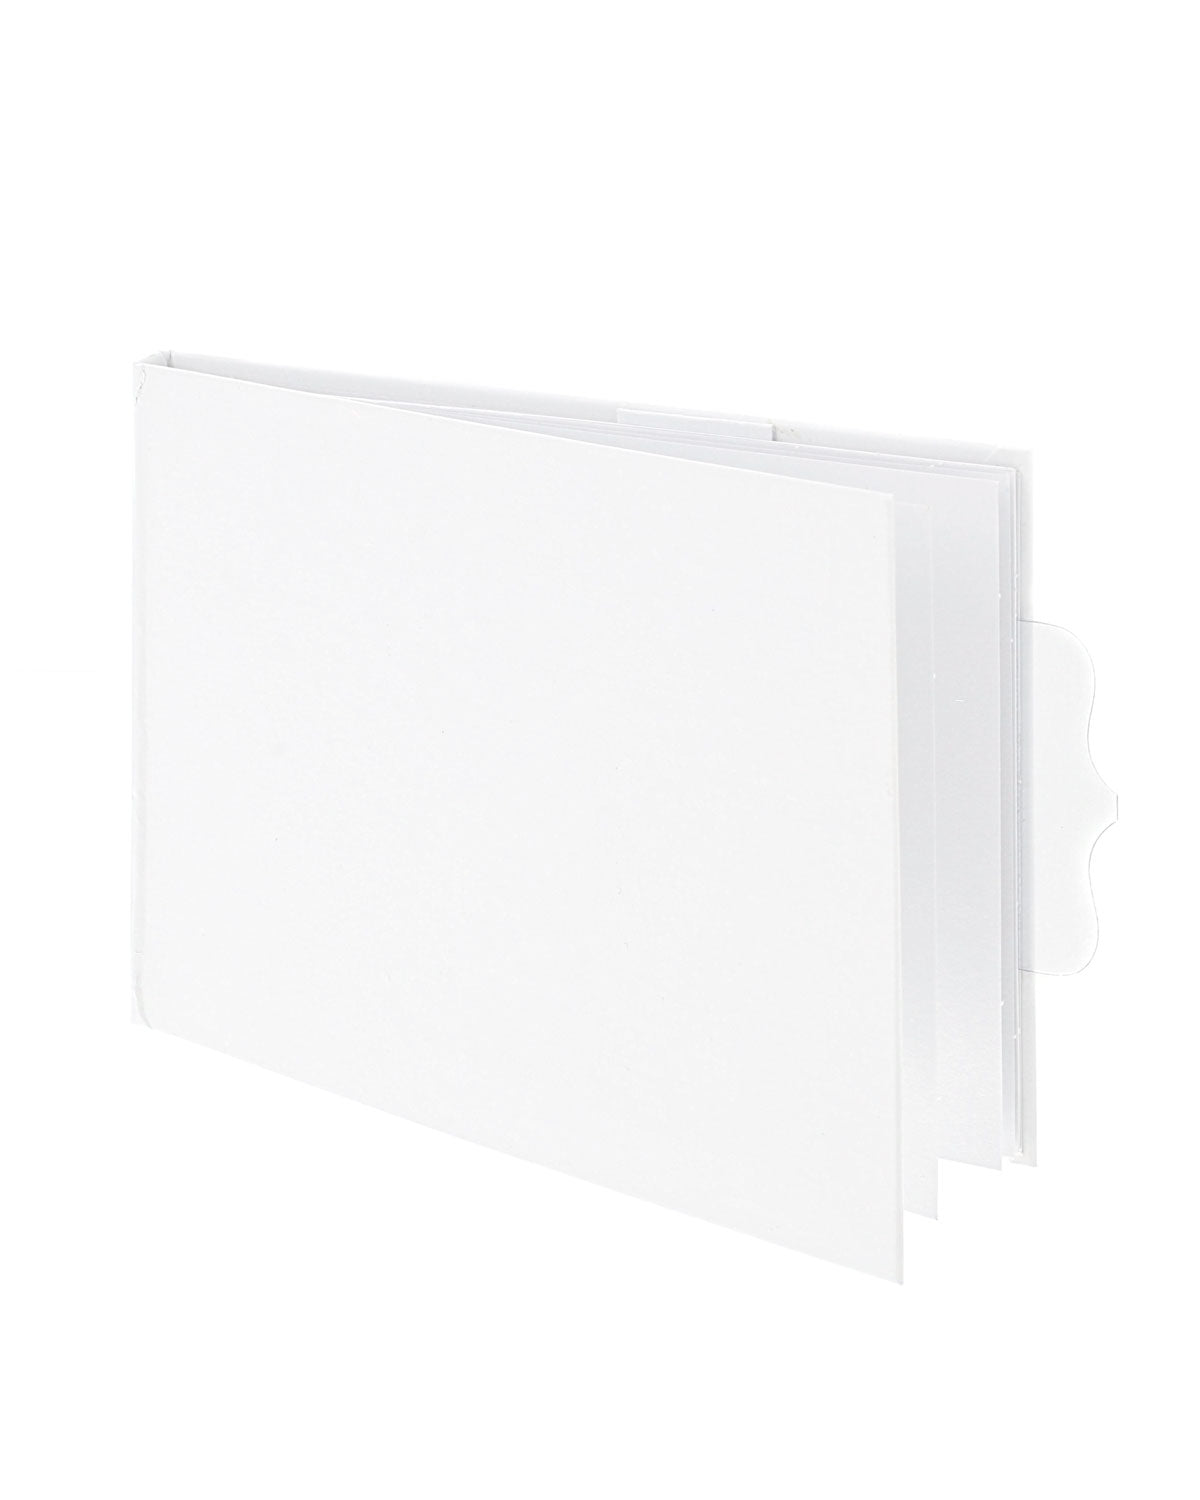 Signature Essentials 4 x 5.5 White Flip Book